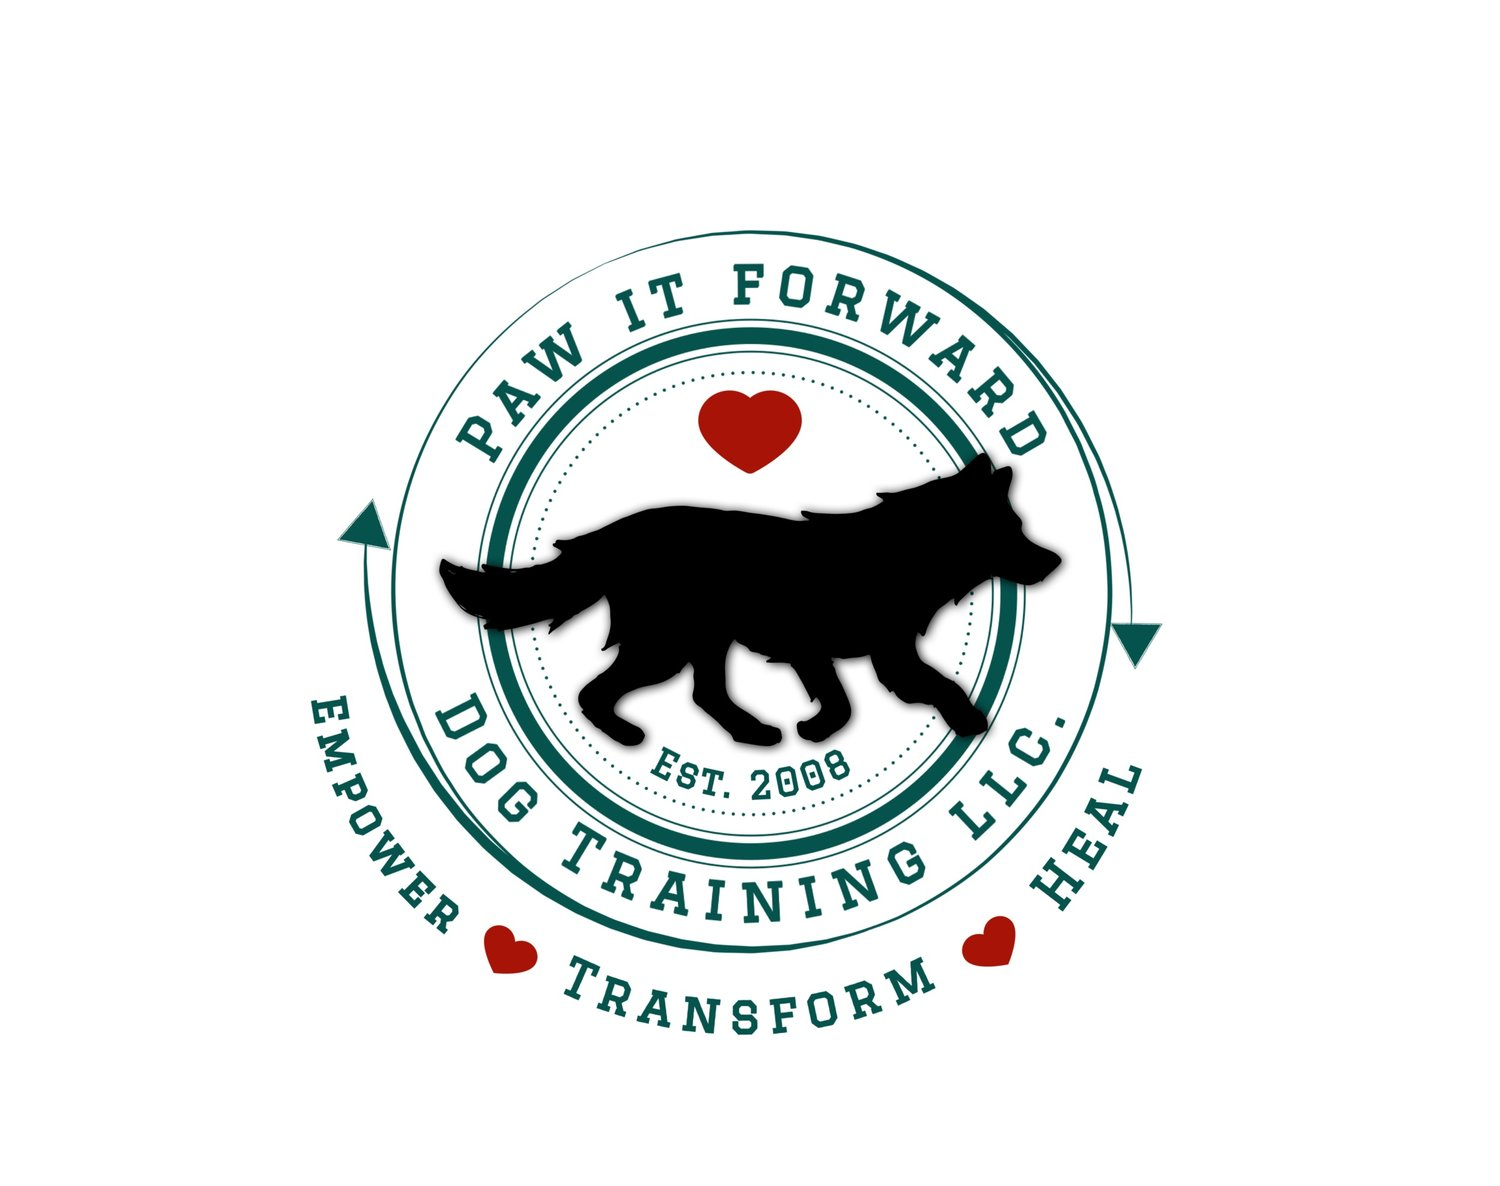 paw it forward dog training, llc